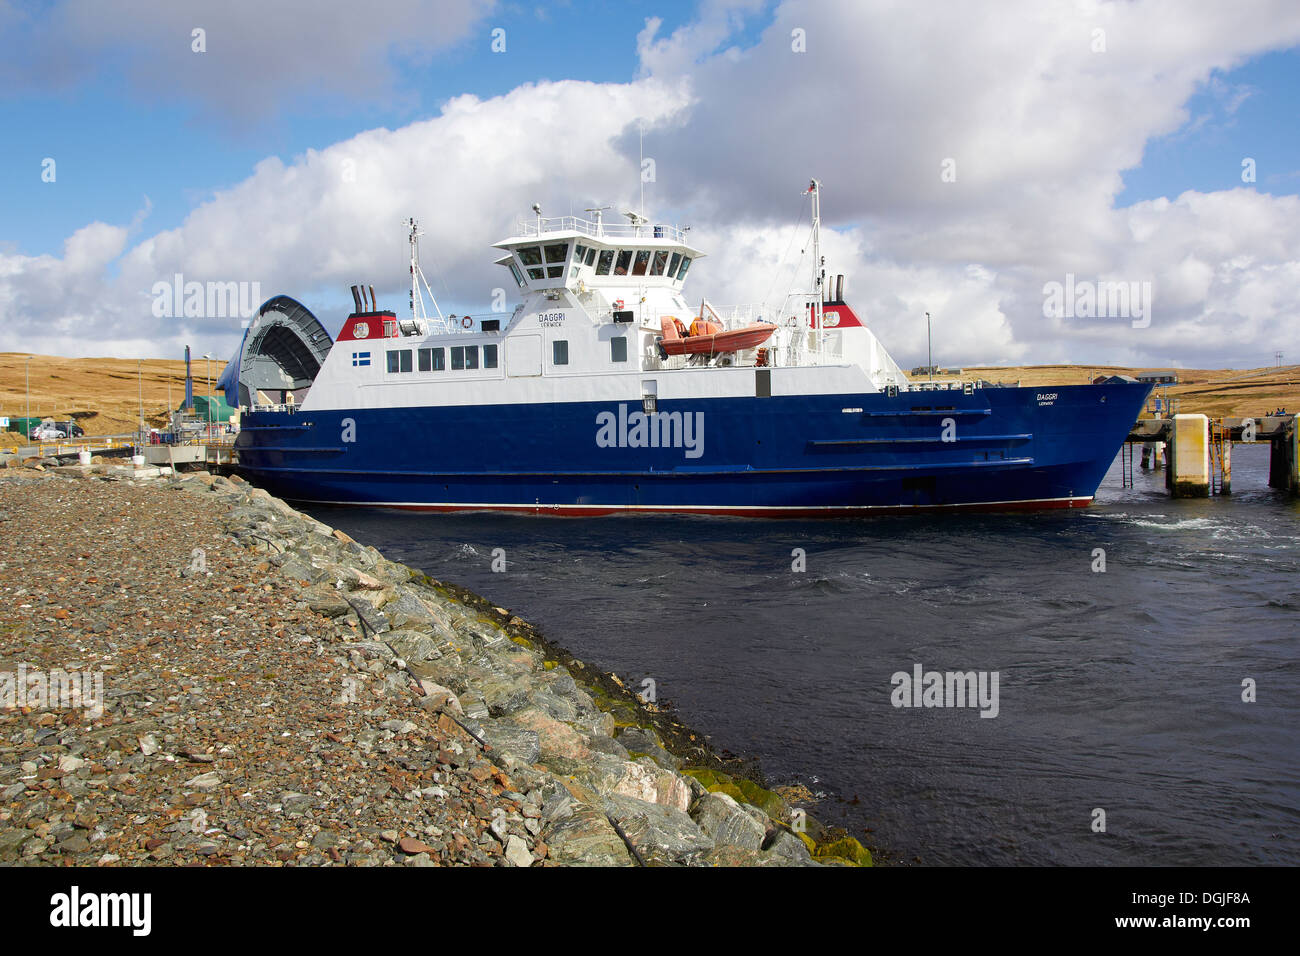 Inter island ro ro car ferry. - Stock Image